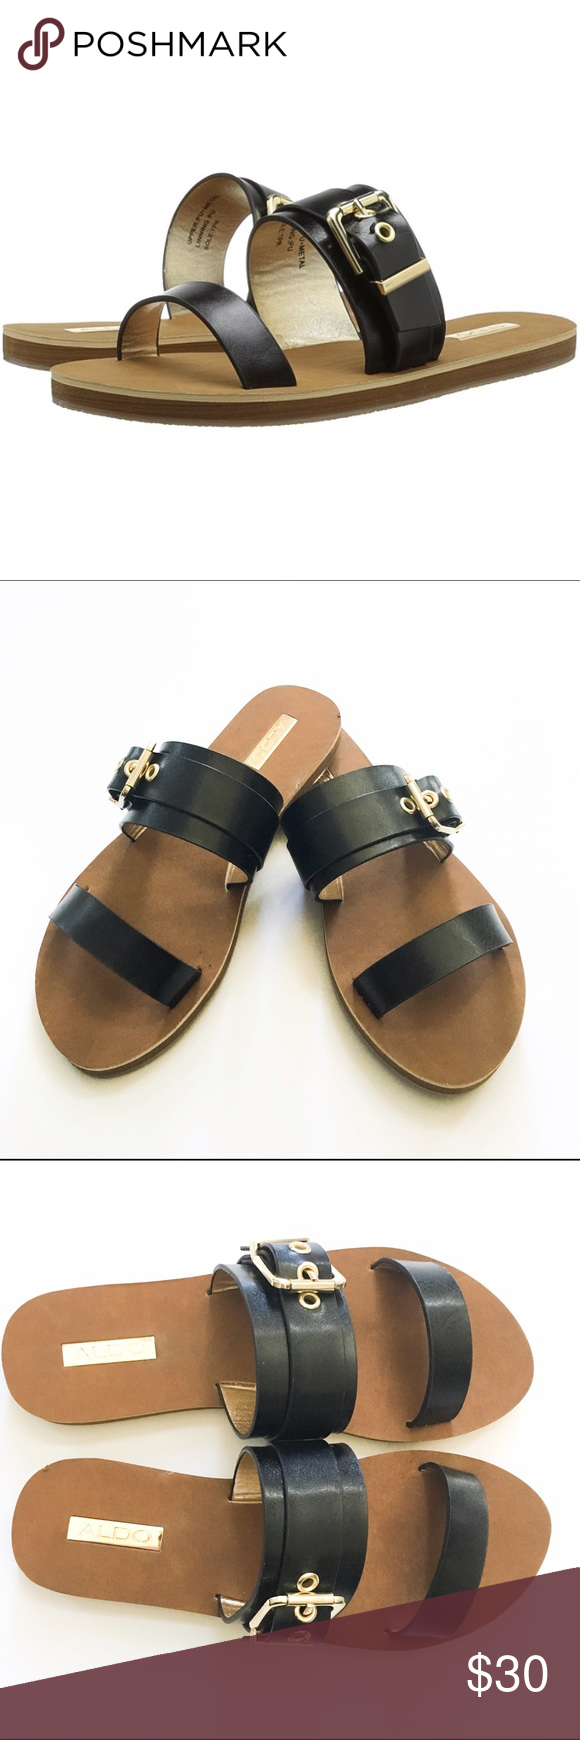 Aldo Eleanna Black Slide Sandals These are NWOT Aldo Eleanna Black Slide Sandals. In excellent condition. Never worn. Minor wear from storage. Reads size 6.5 in shoe but best fits size 6. Runs small. Aldo Shoes Sandals